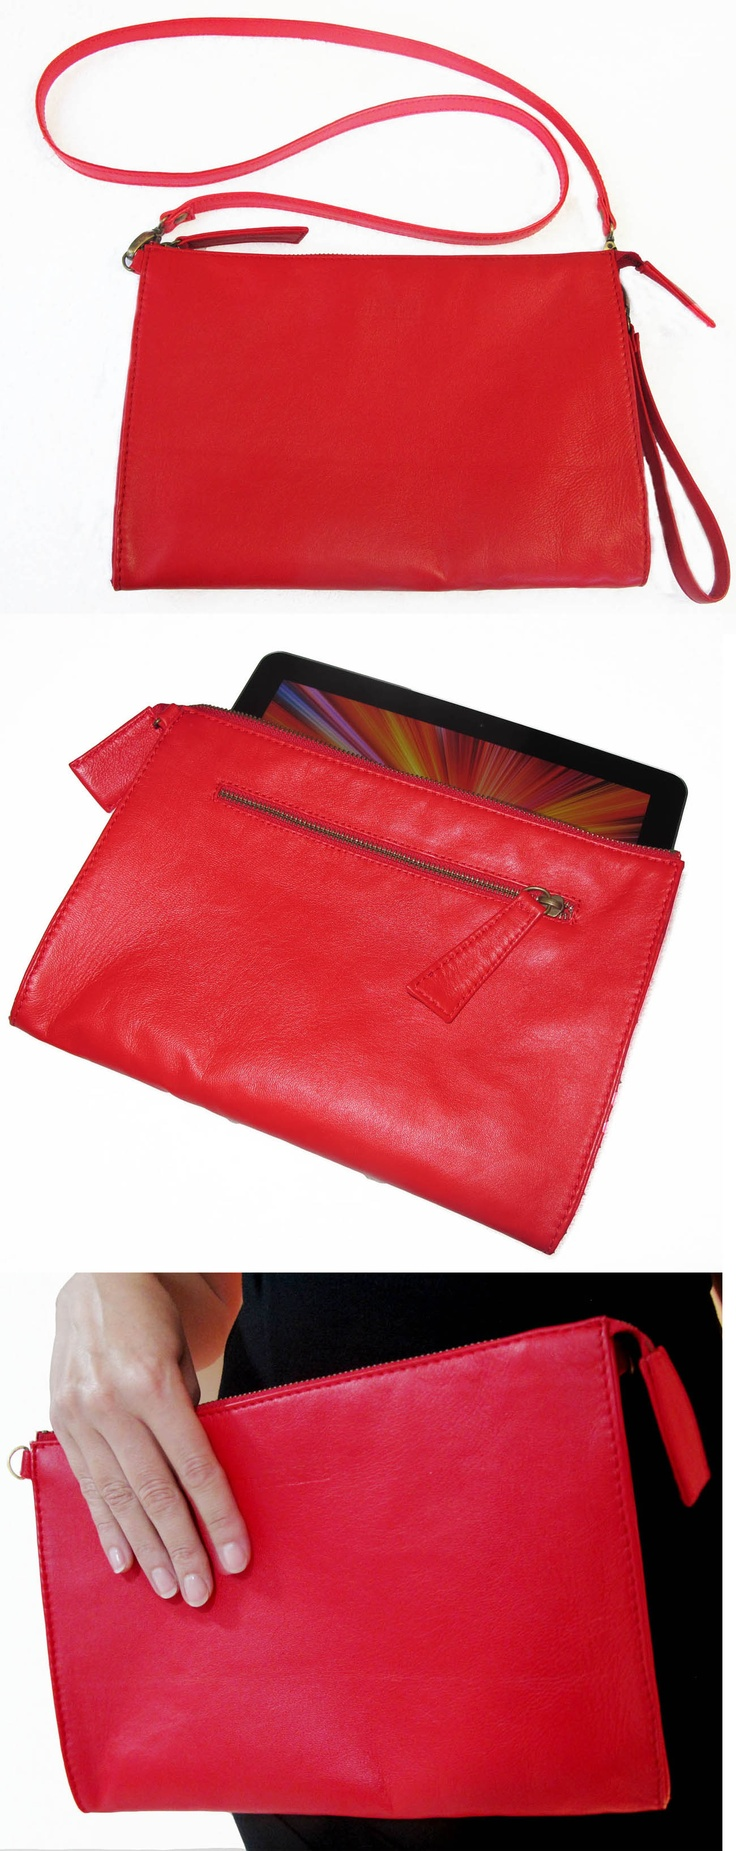 This bag is handmade with genuine leather  Can be used as a clutch, a cross body purse or tablet cover, (the size fits IPad and Galaxy tablet) come with detachable long strap and detachable wrist strap, fully lined with soft suede-like fabric, two slip pockets inside and metal zip pocket outside.    As it could be used as tablet Ipad or Galaxy case it can be useful for your male customers  $85 US